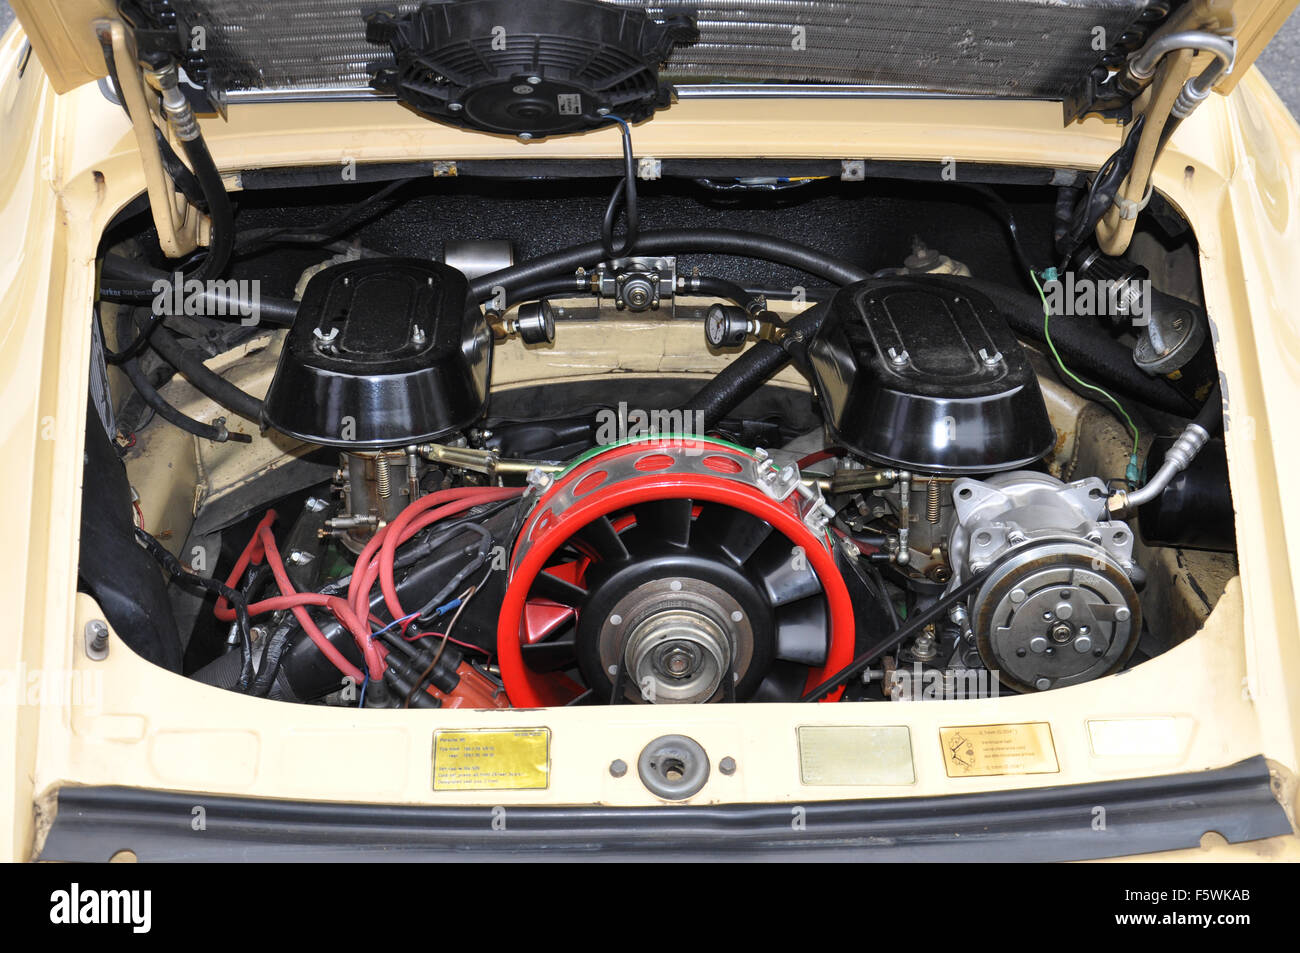 An Air Cooled Engine in a 911 Porsche. - Stock Image